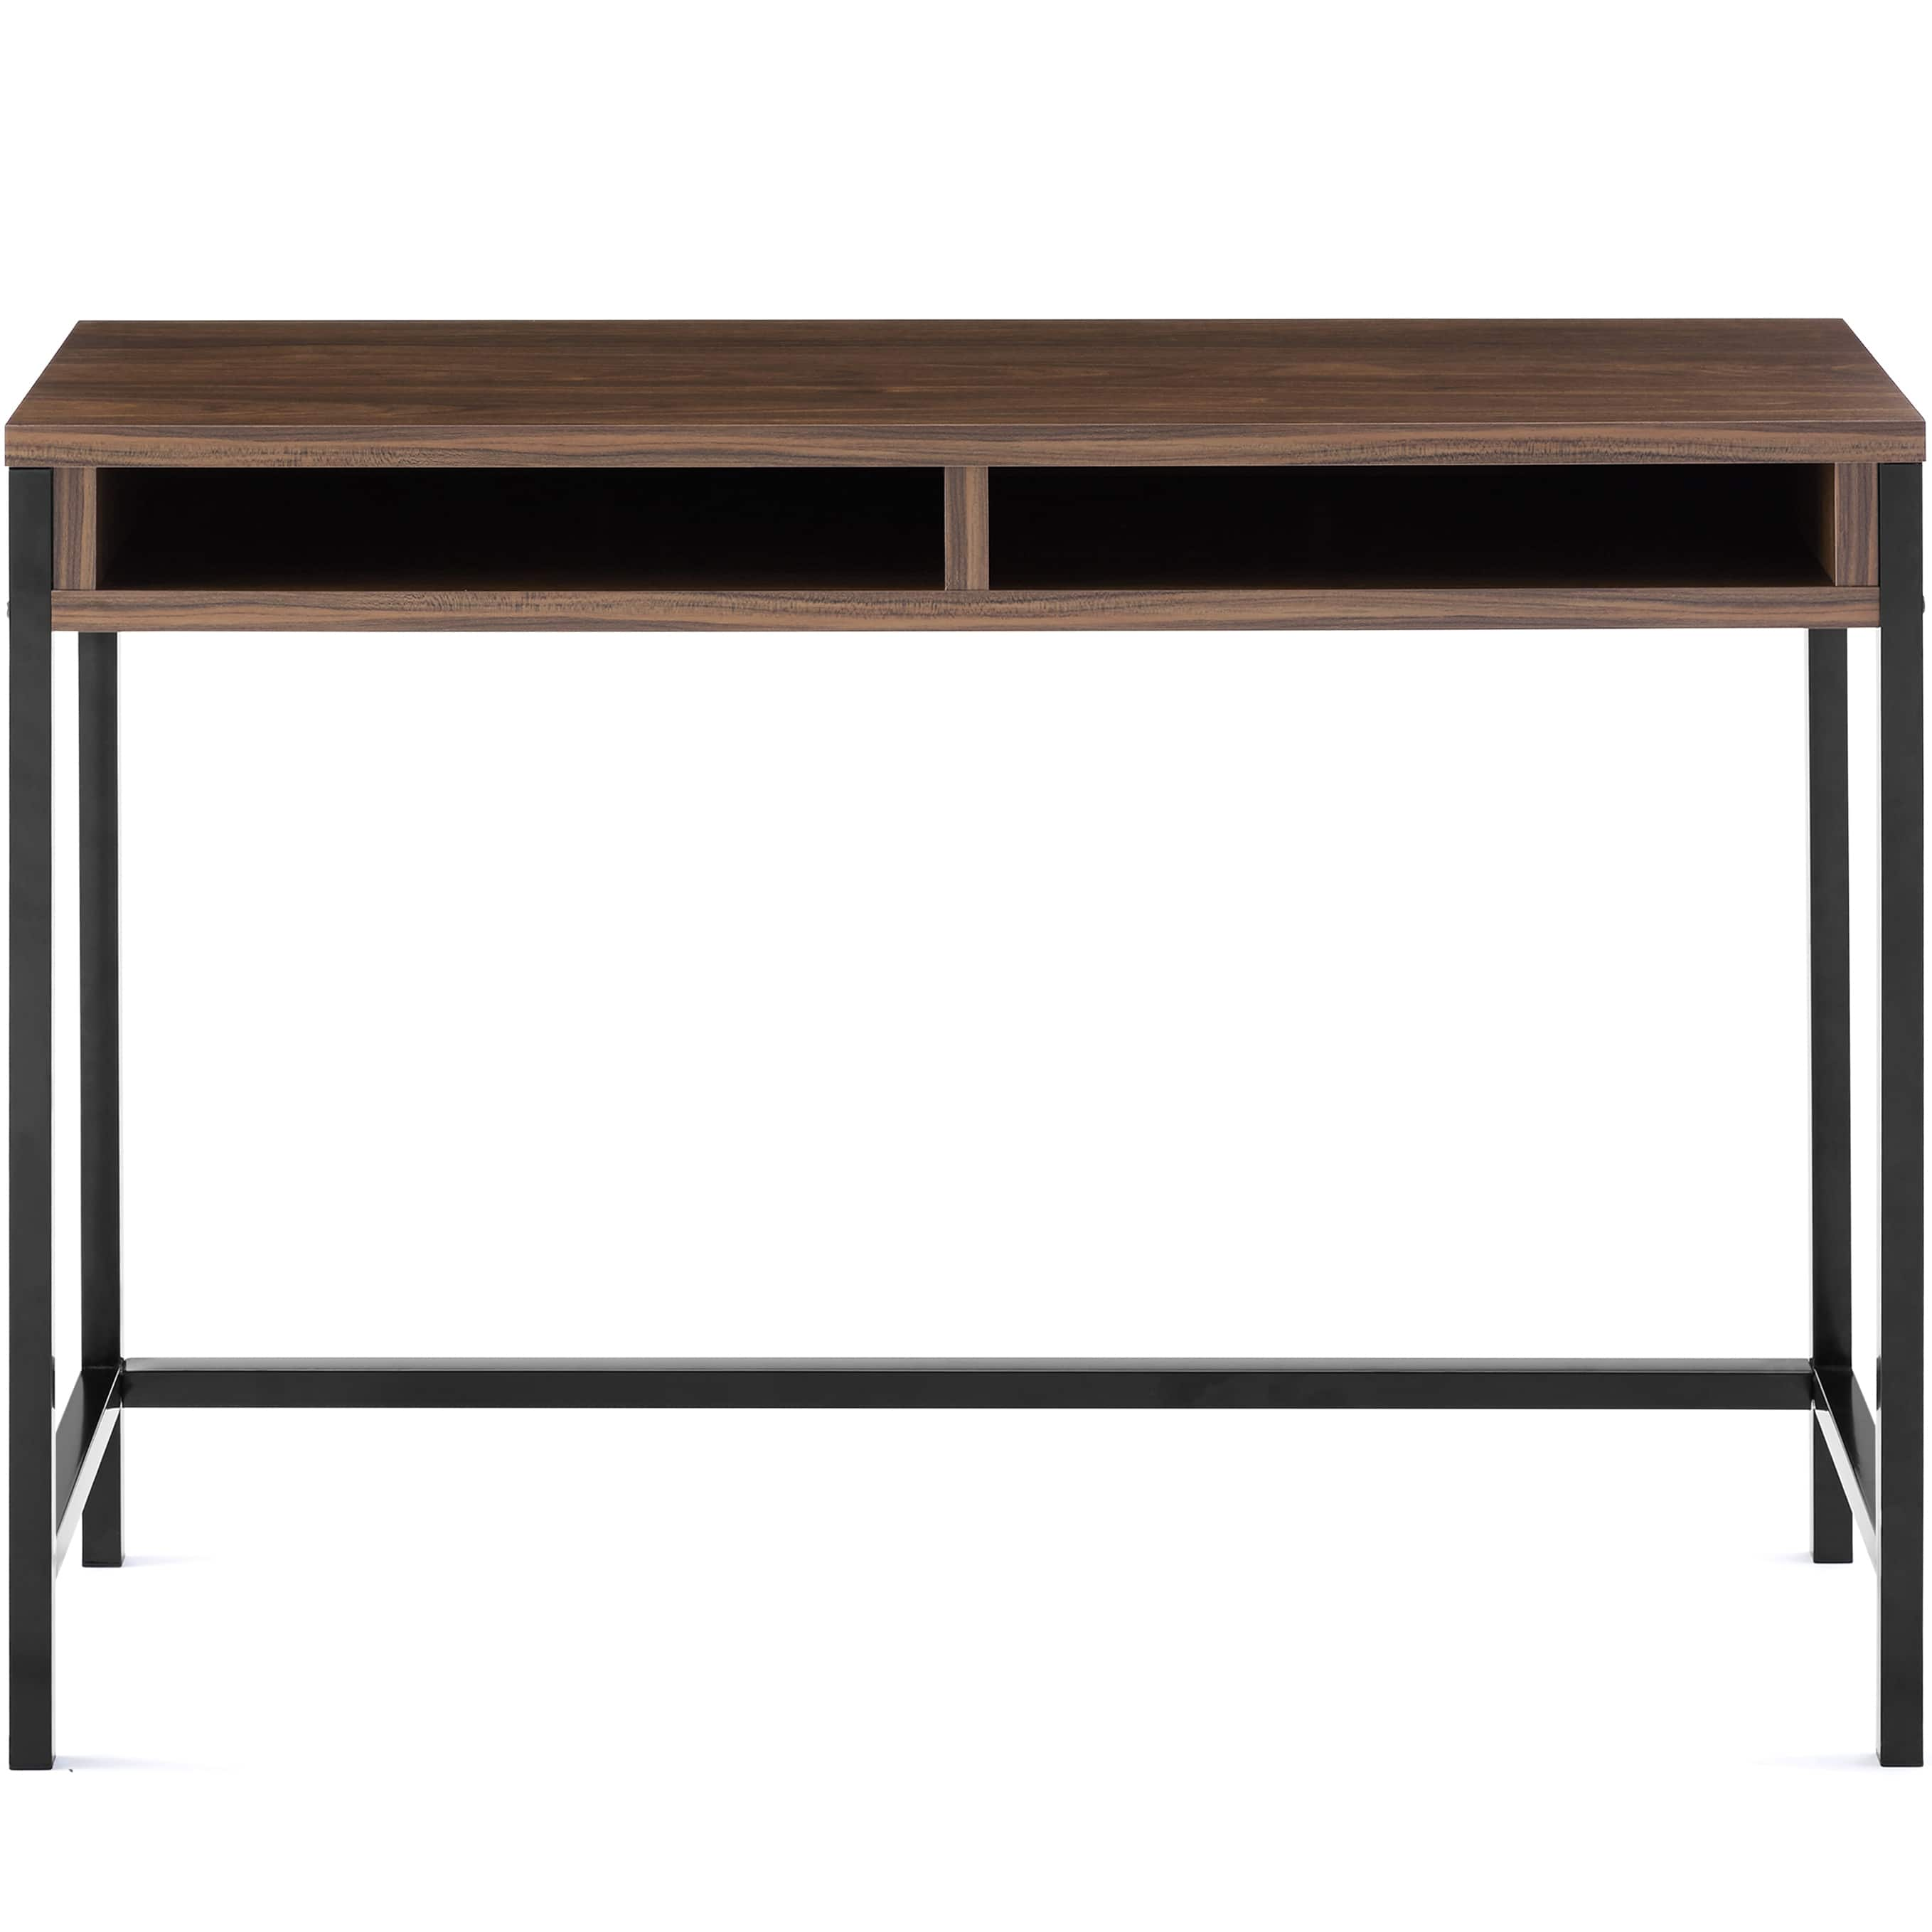 Mainstays Sumpter Park Student Desk $37.00 + Free Shipping